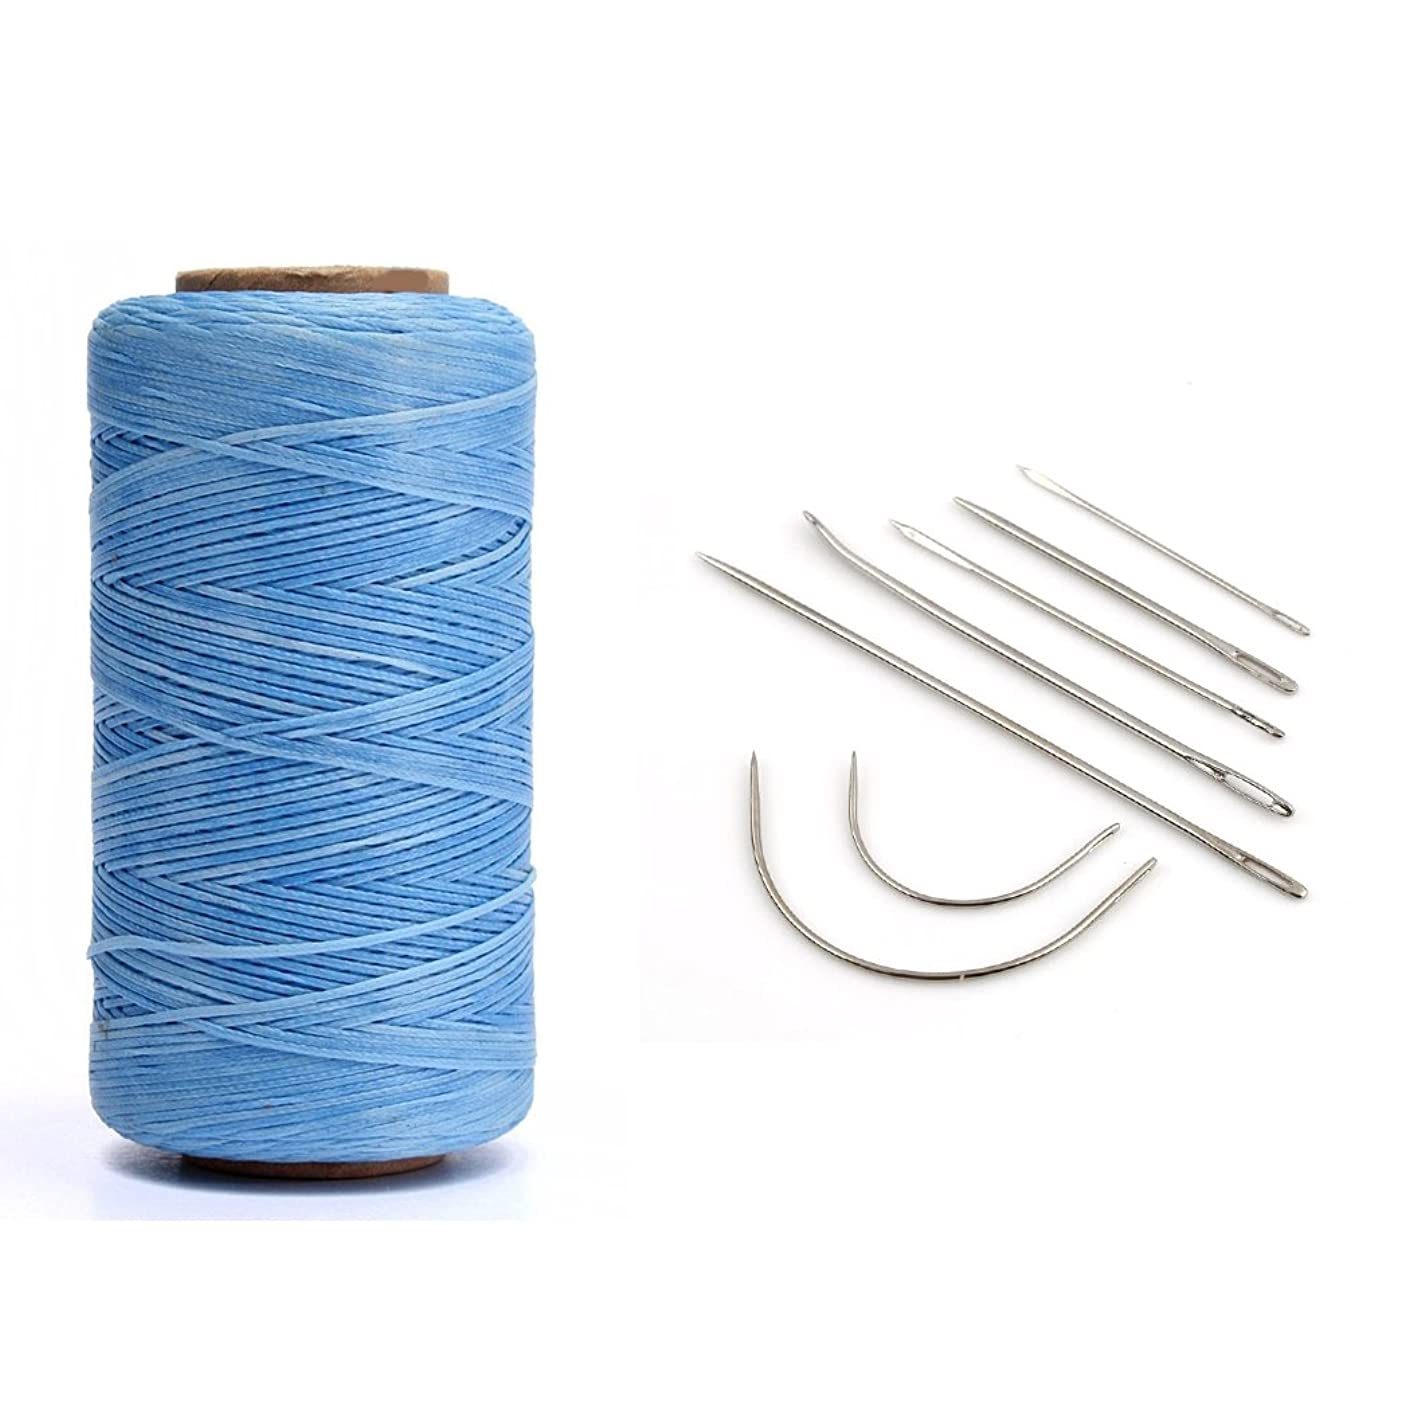 YEHAM Flat Waxed Thread Cord for Leather craft DIY 1 MM 150D 284 Yard come with 7-count Leather Craft Hand Needles (blue)